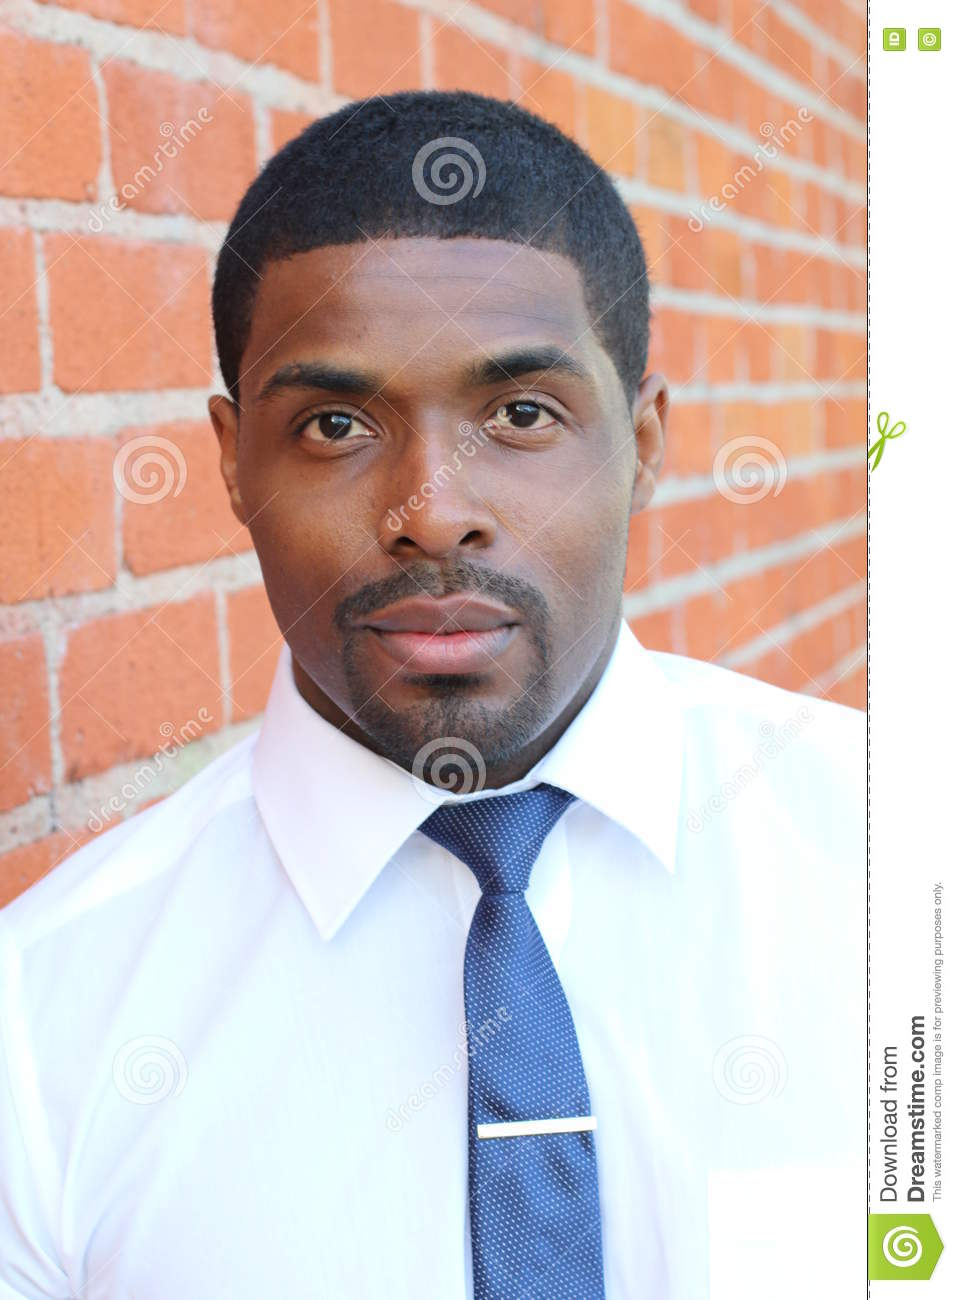 Highly detailed close-up portrait of a young smart successful African business man